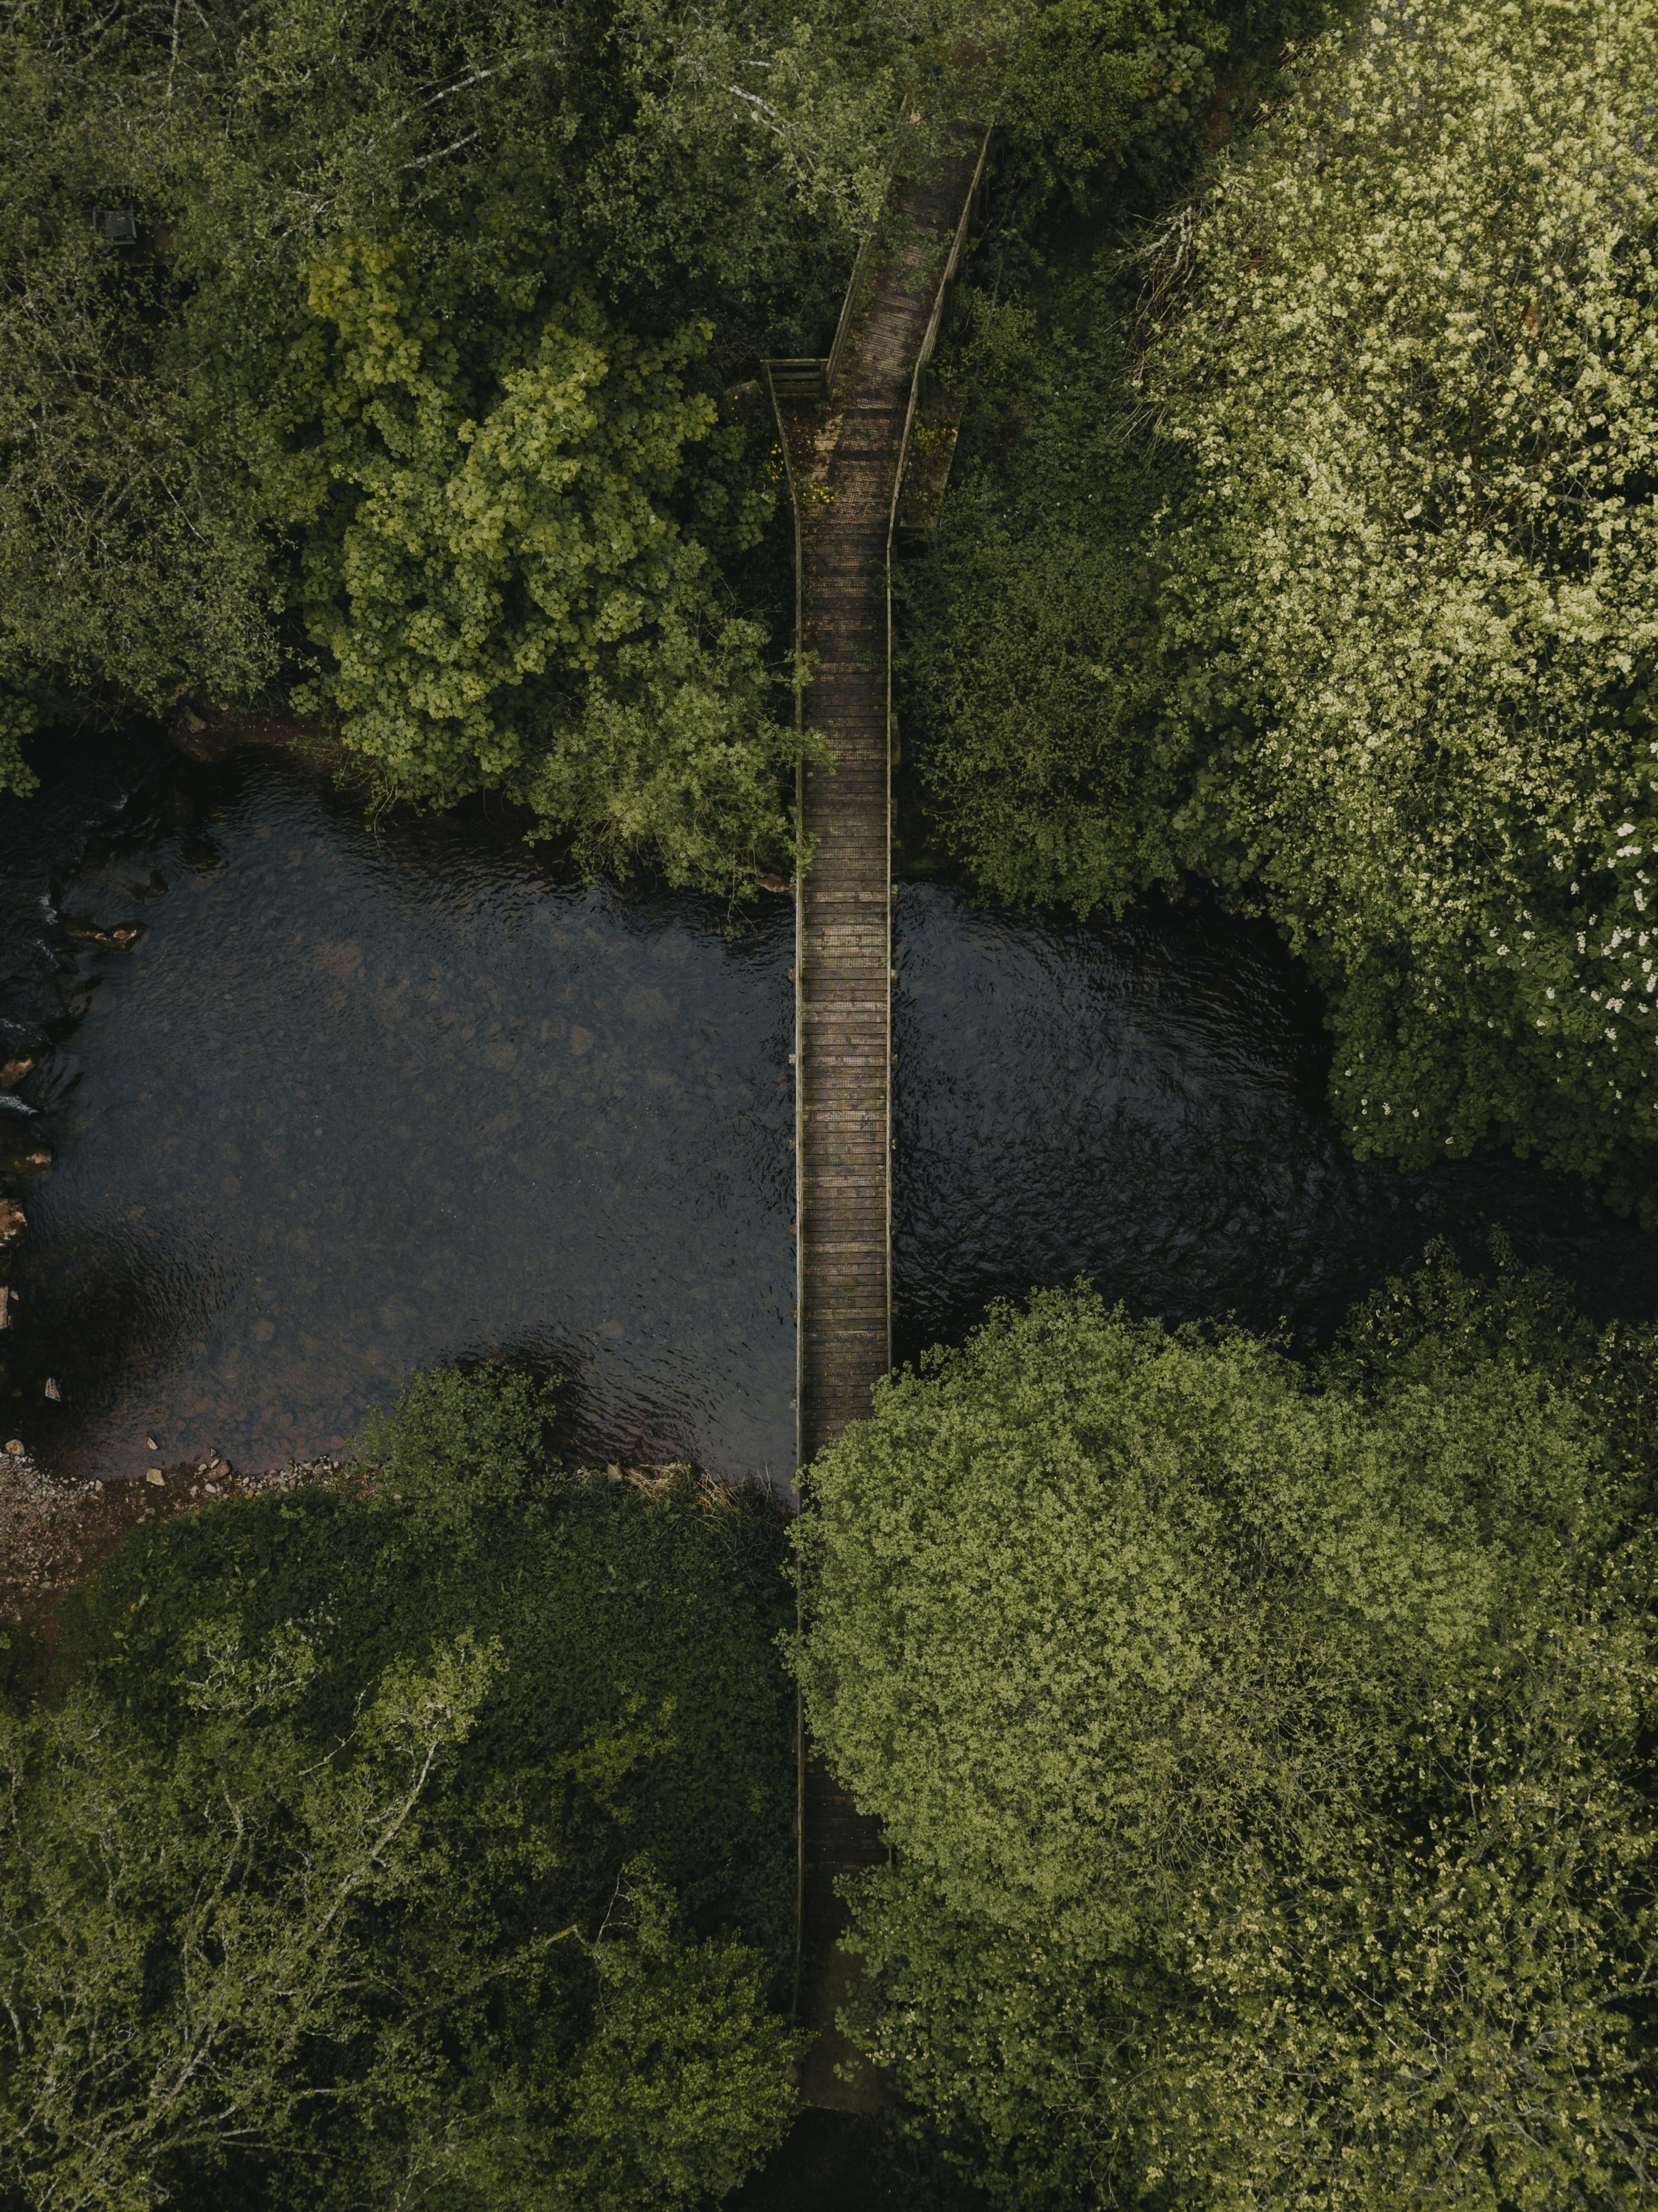 aerial view of brown wooden bridge above a river